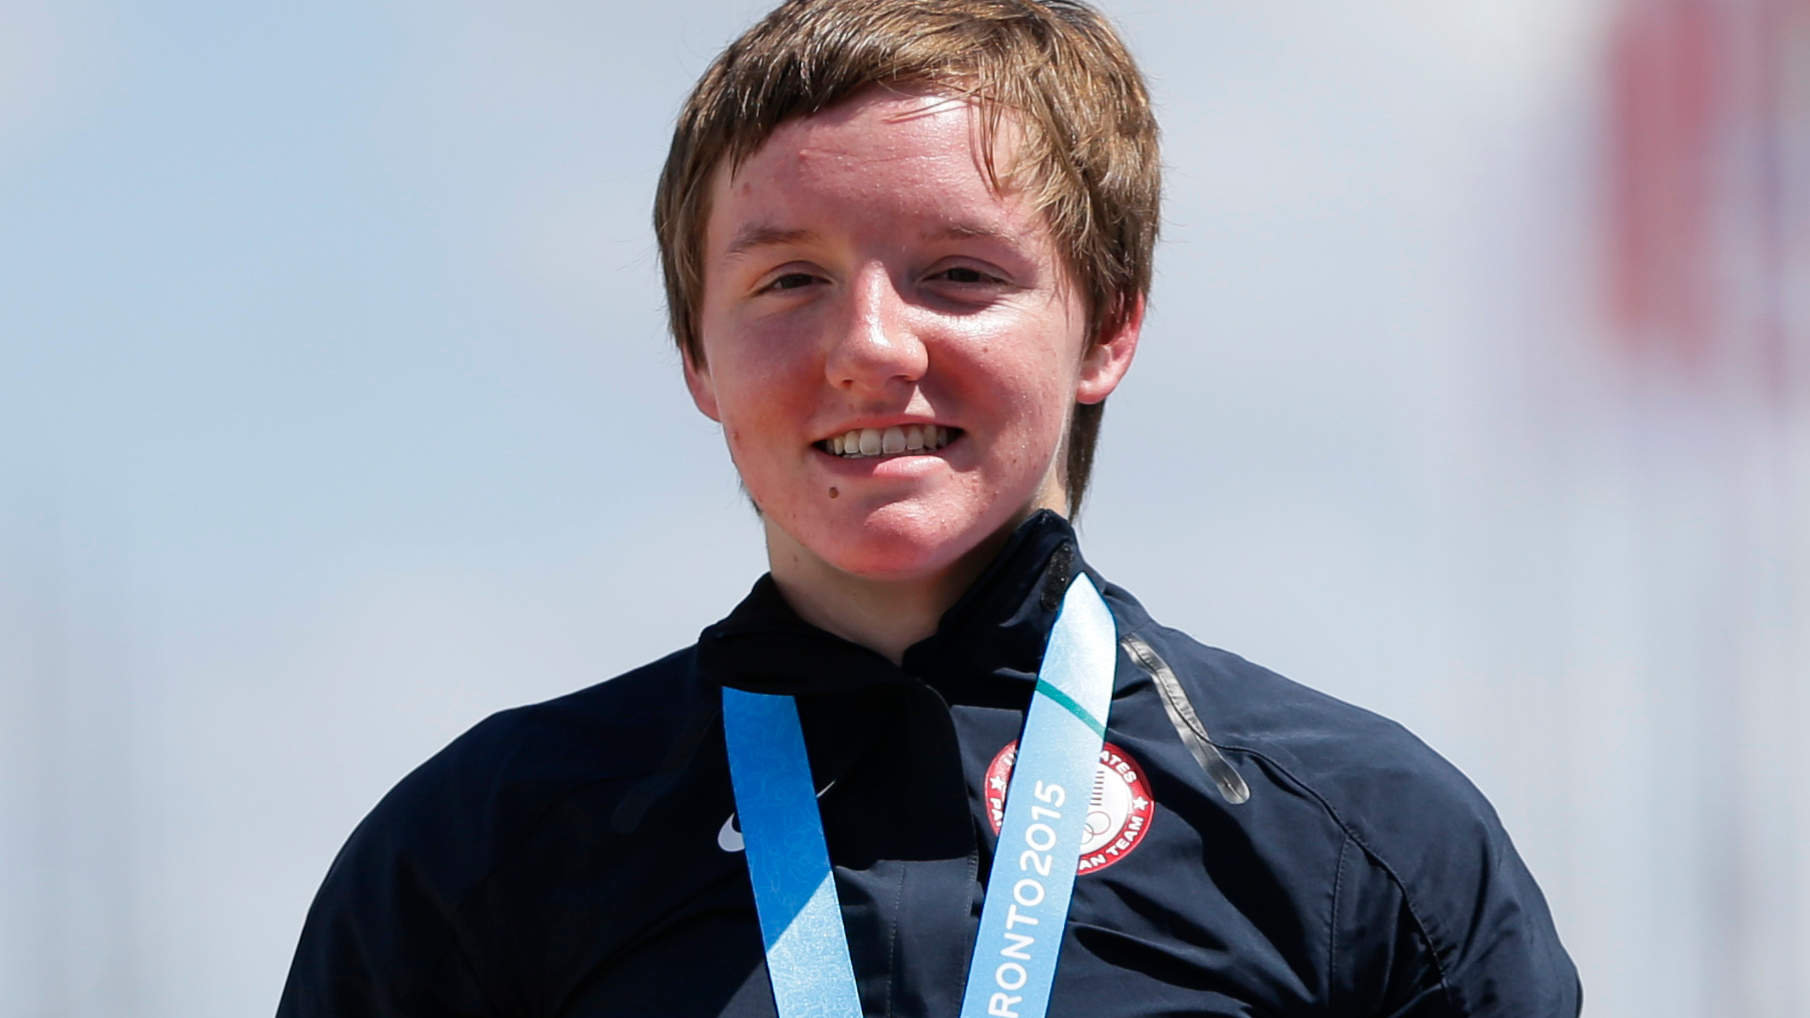 23-Year-Old Olympic Cyclist Kelly Catlin Dies in Apparent Suicide: Reports